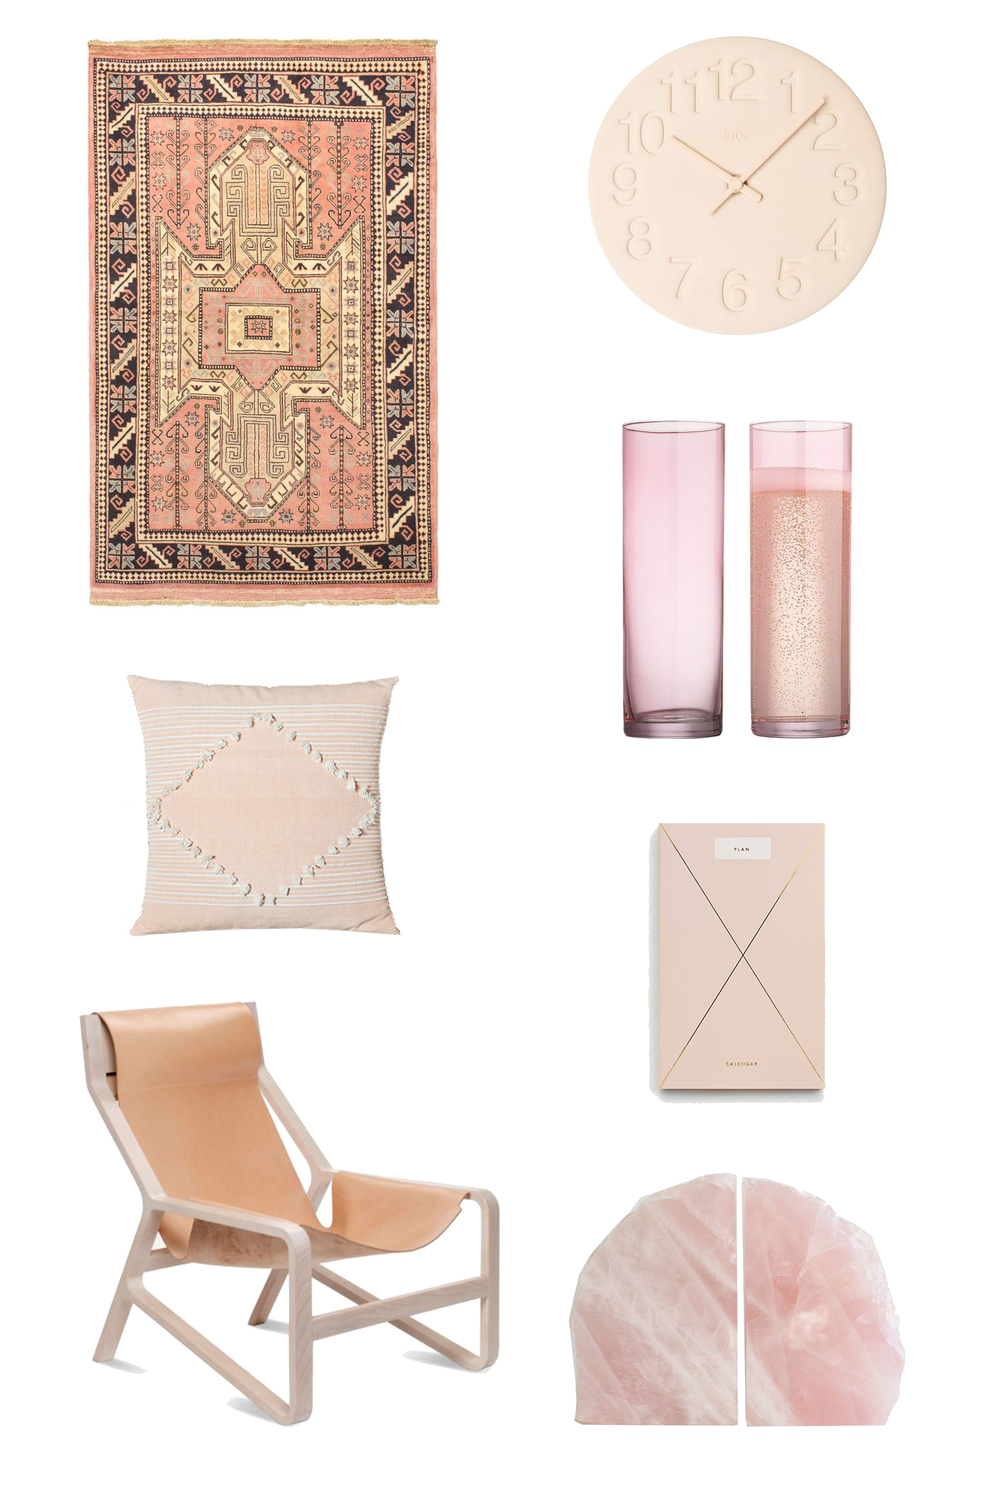 Rug  //  Clock  //  Champagne Flutes  //  Pillow  //  Planner  //  Chair  //  Bookends